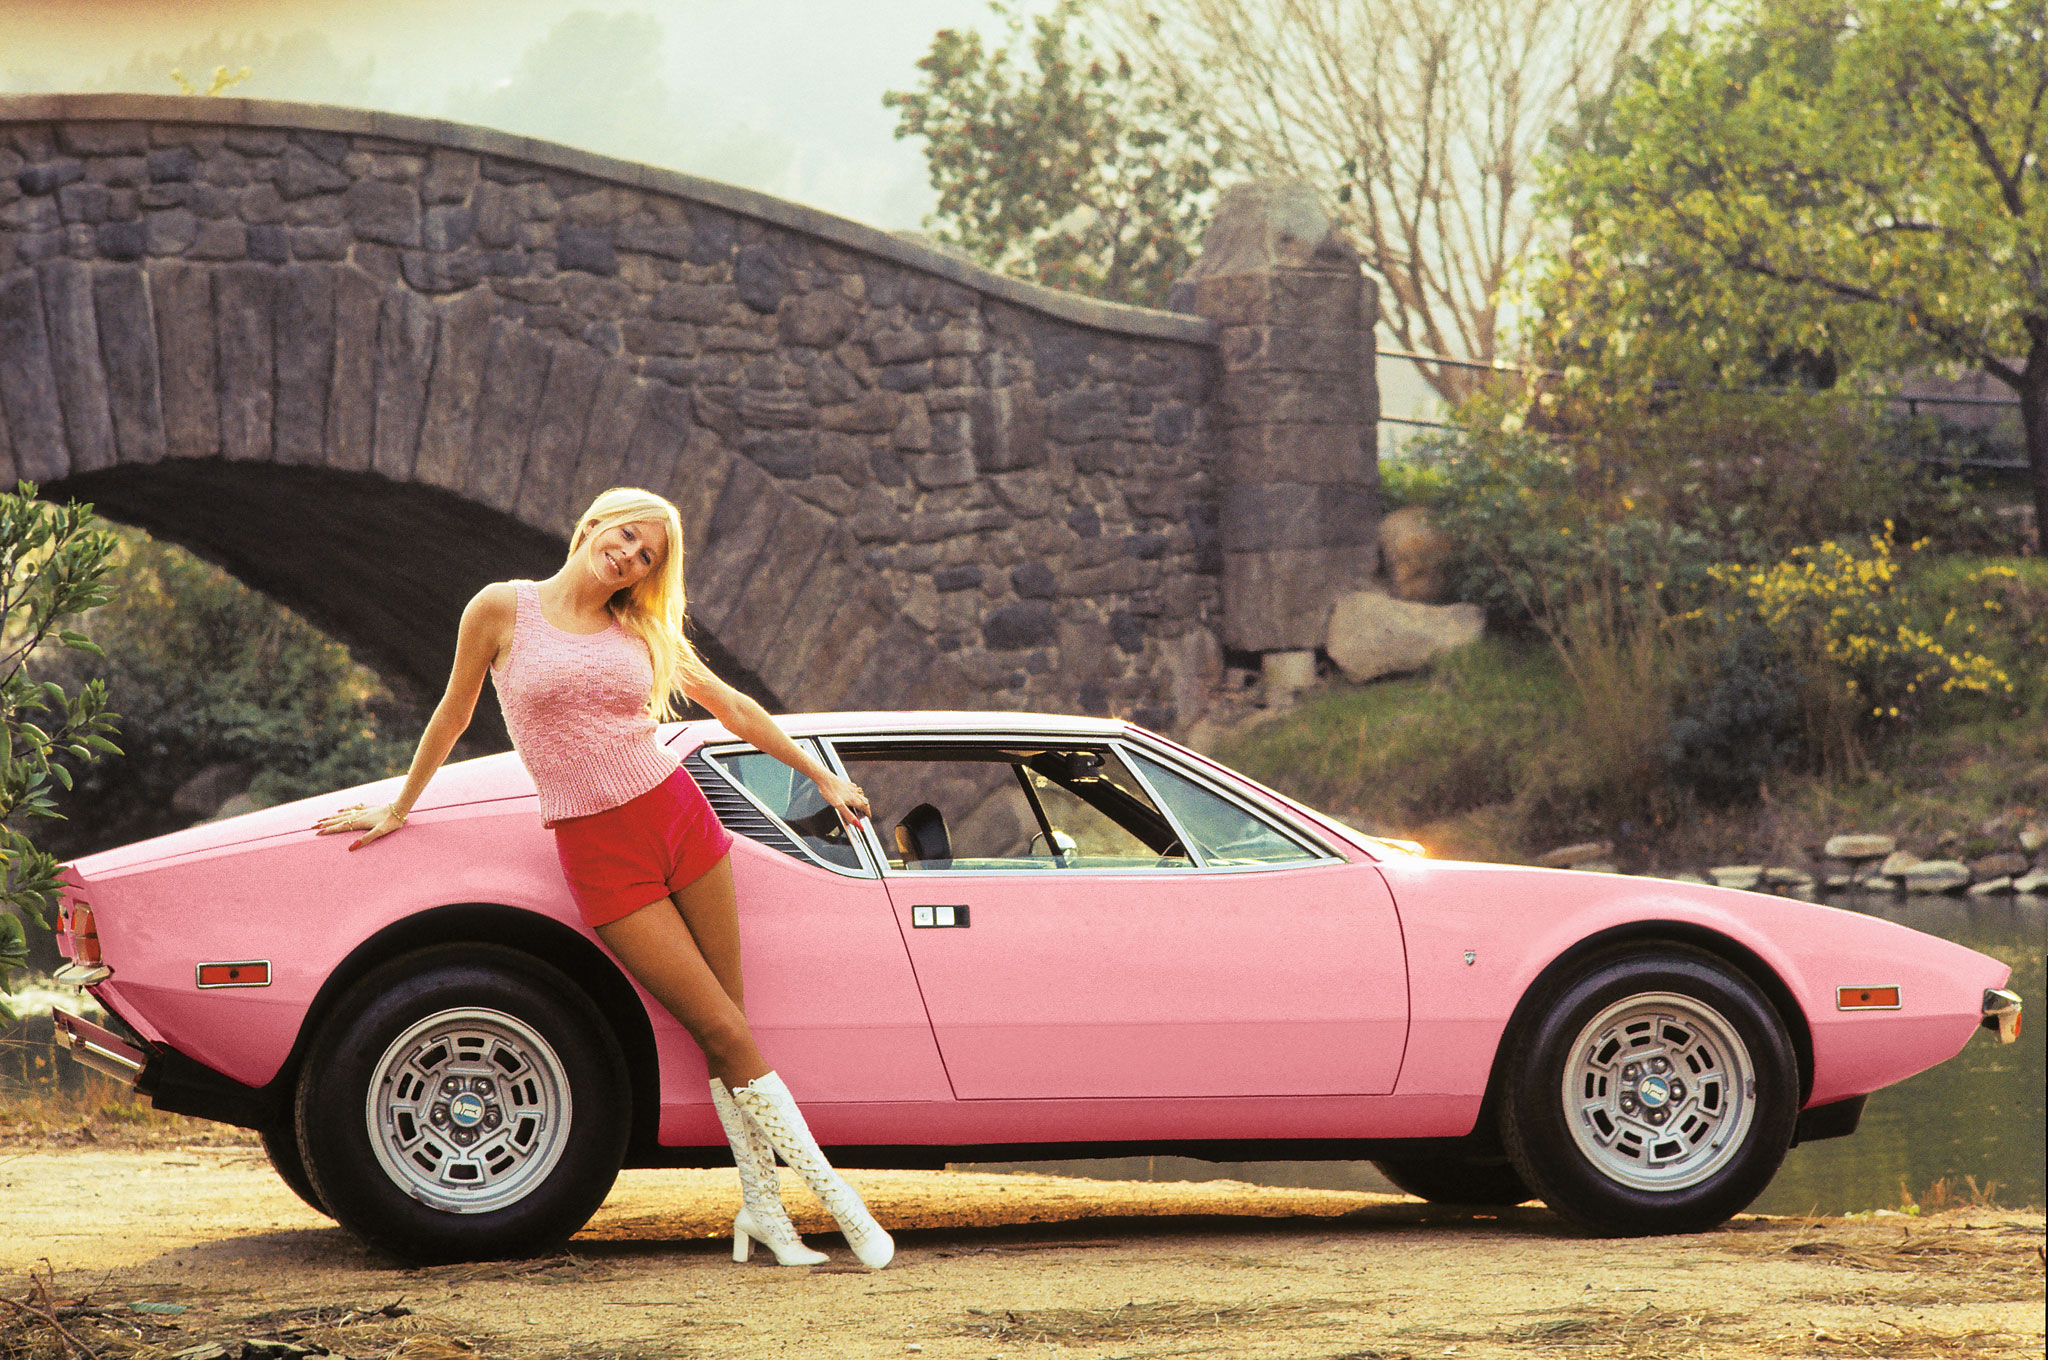 girl with red shorts and pink car